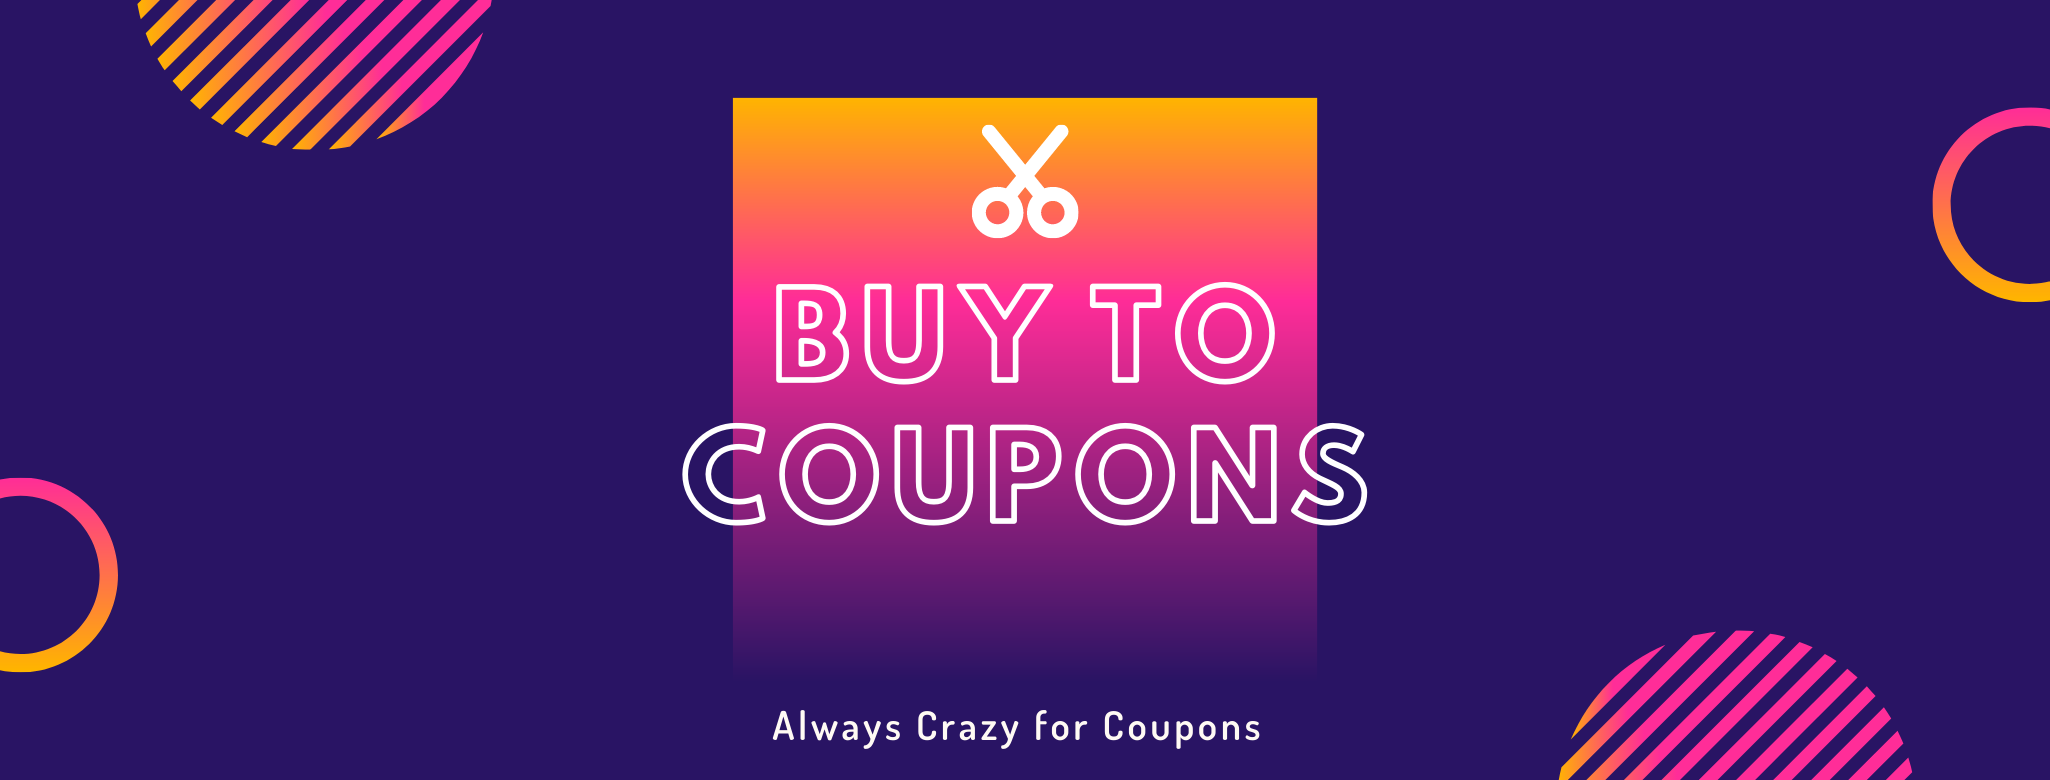 Buy To Coupons